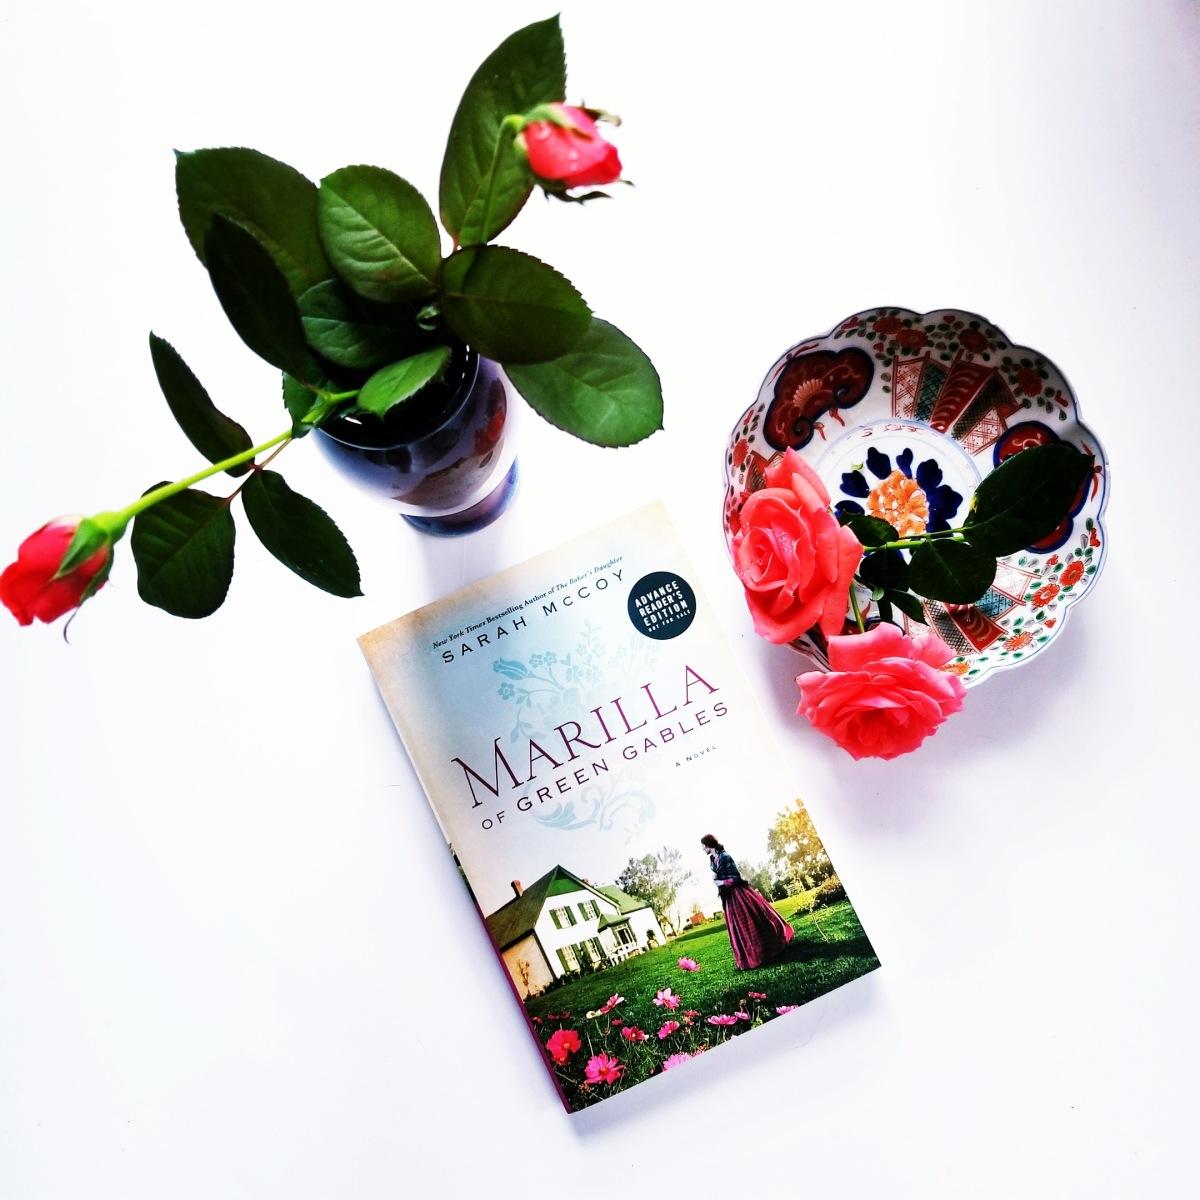 I can't wait for ... (Can't-Wait Wednesday/Waiting on Wednesday) #cantwaitwednesday #tarheelreader #thrmarilla @sarahmmccoy @wmmorrowbooks #marillaofgreengables